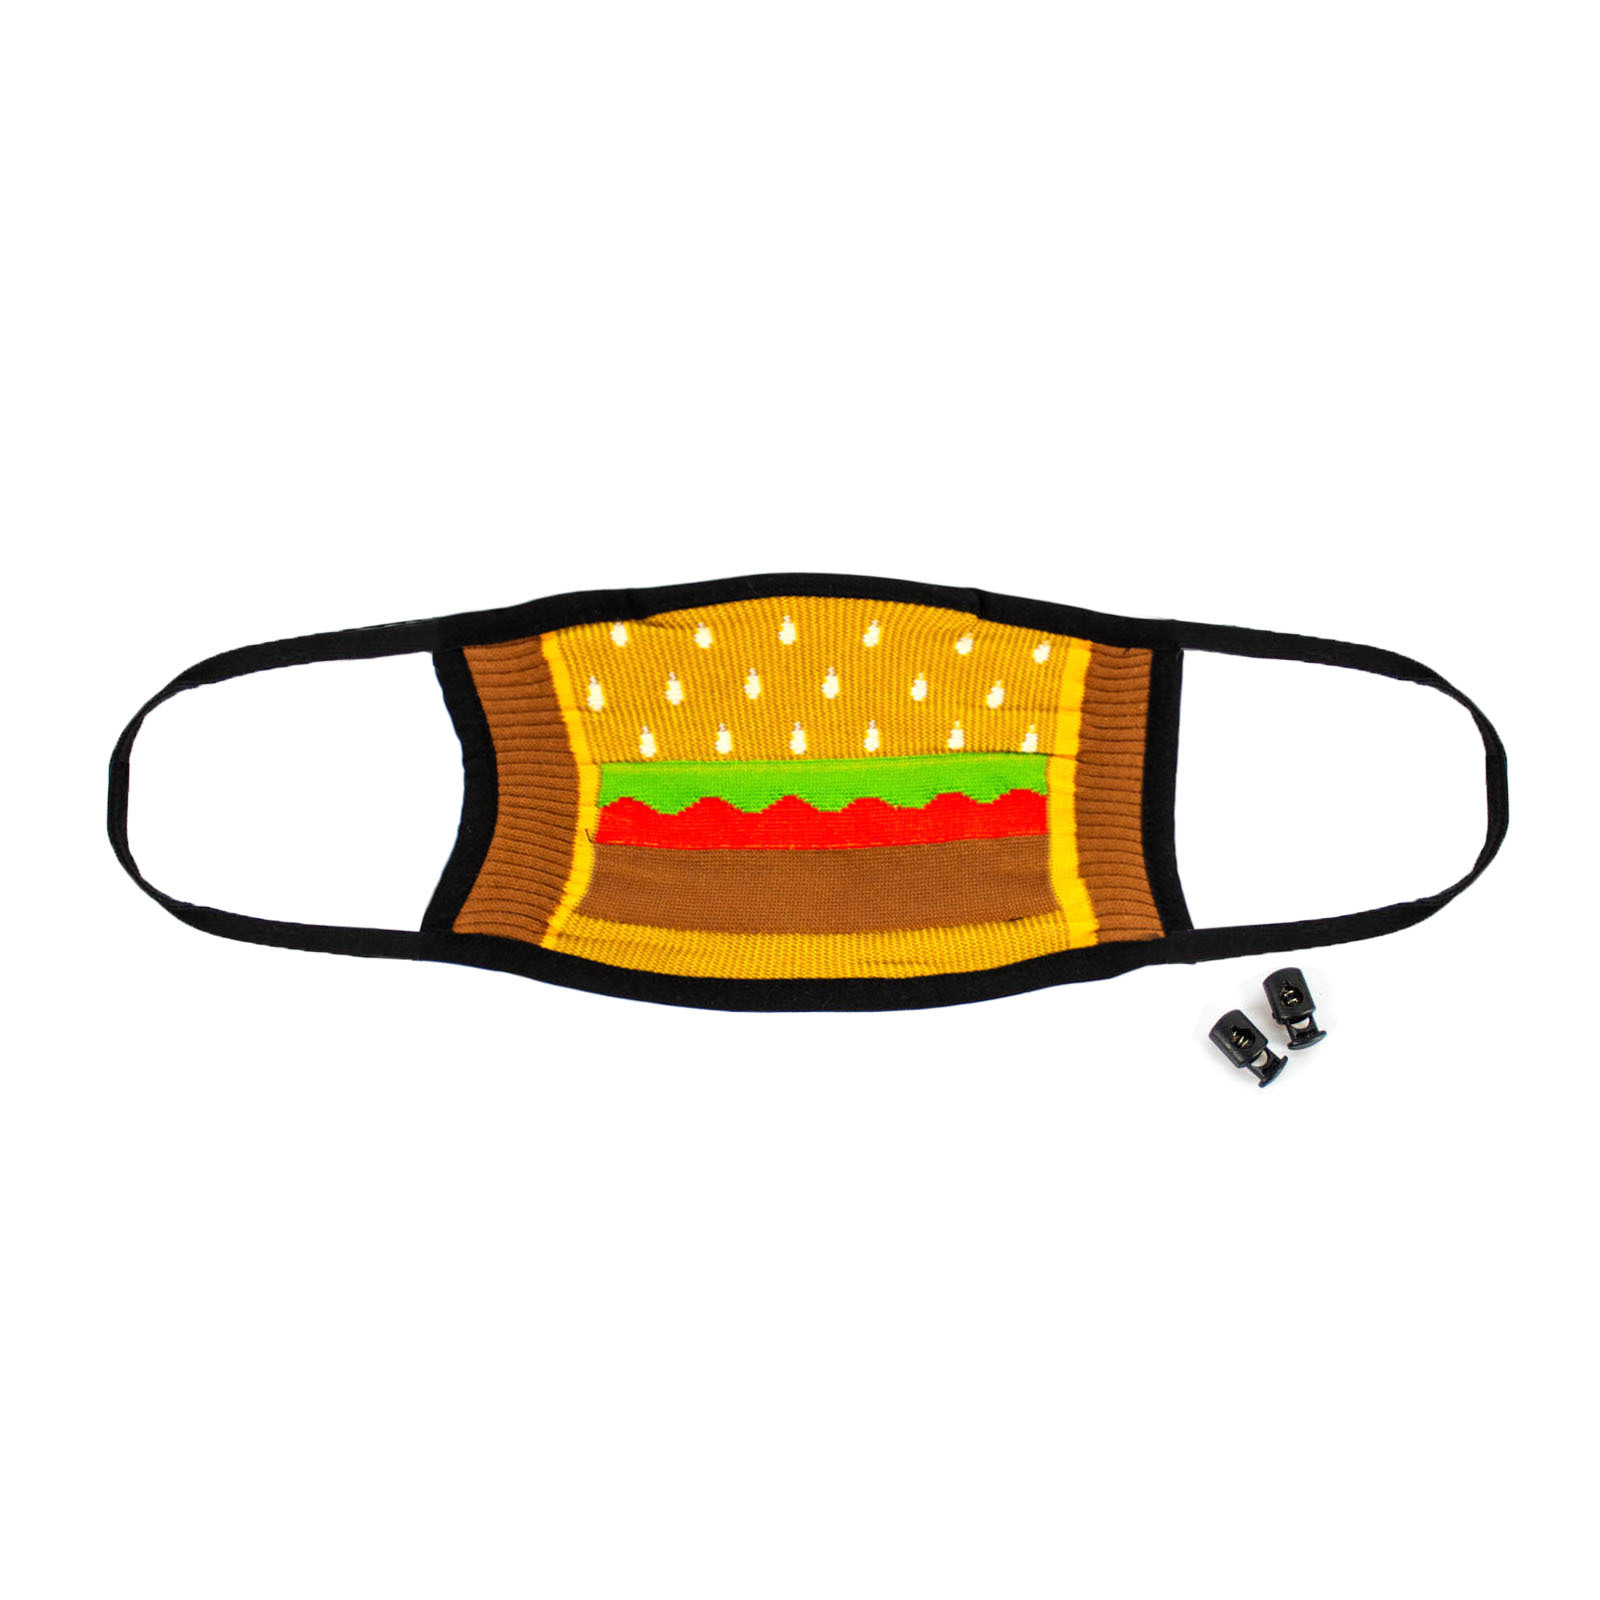 Mouthful - Delicious Burger Face Masks Brown - Unisex in Yellow